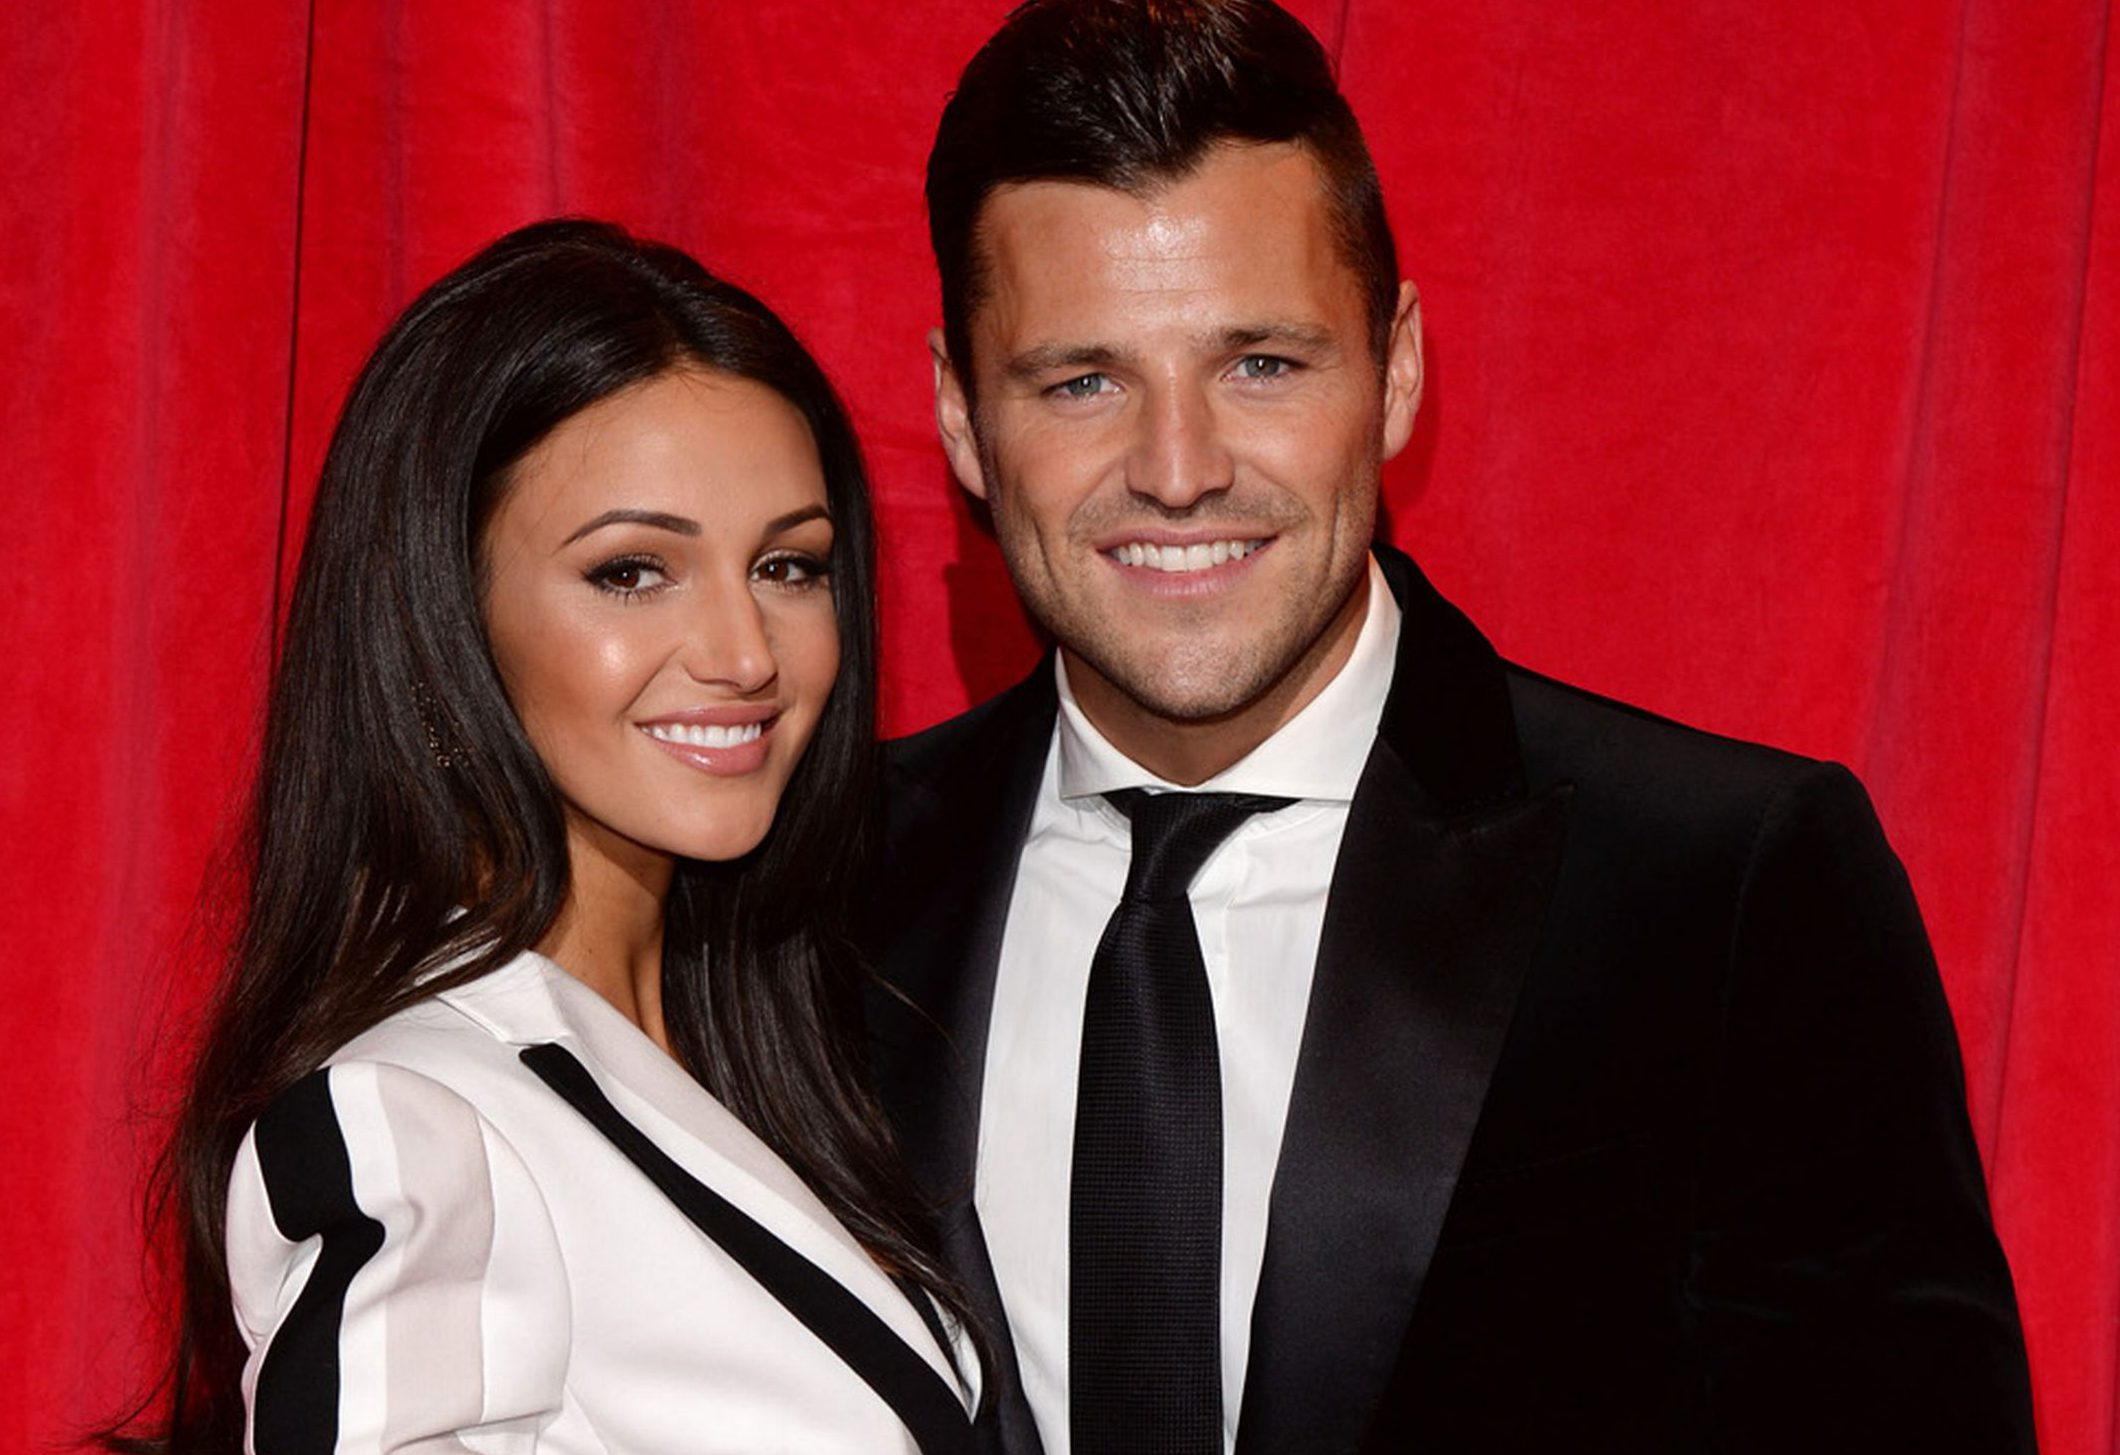 Mark Wright and Michelle Keegan deny they are becoming Scientologists to kickstart Hollywood careers